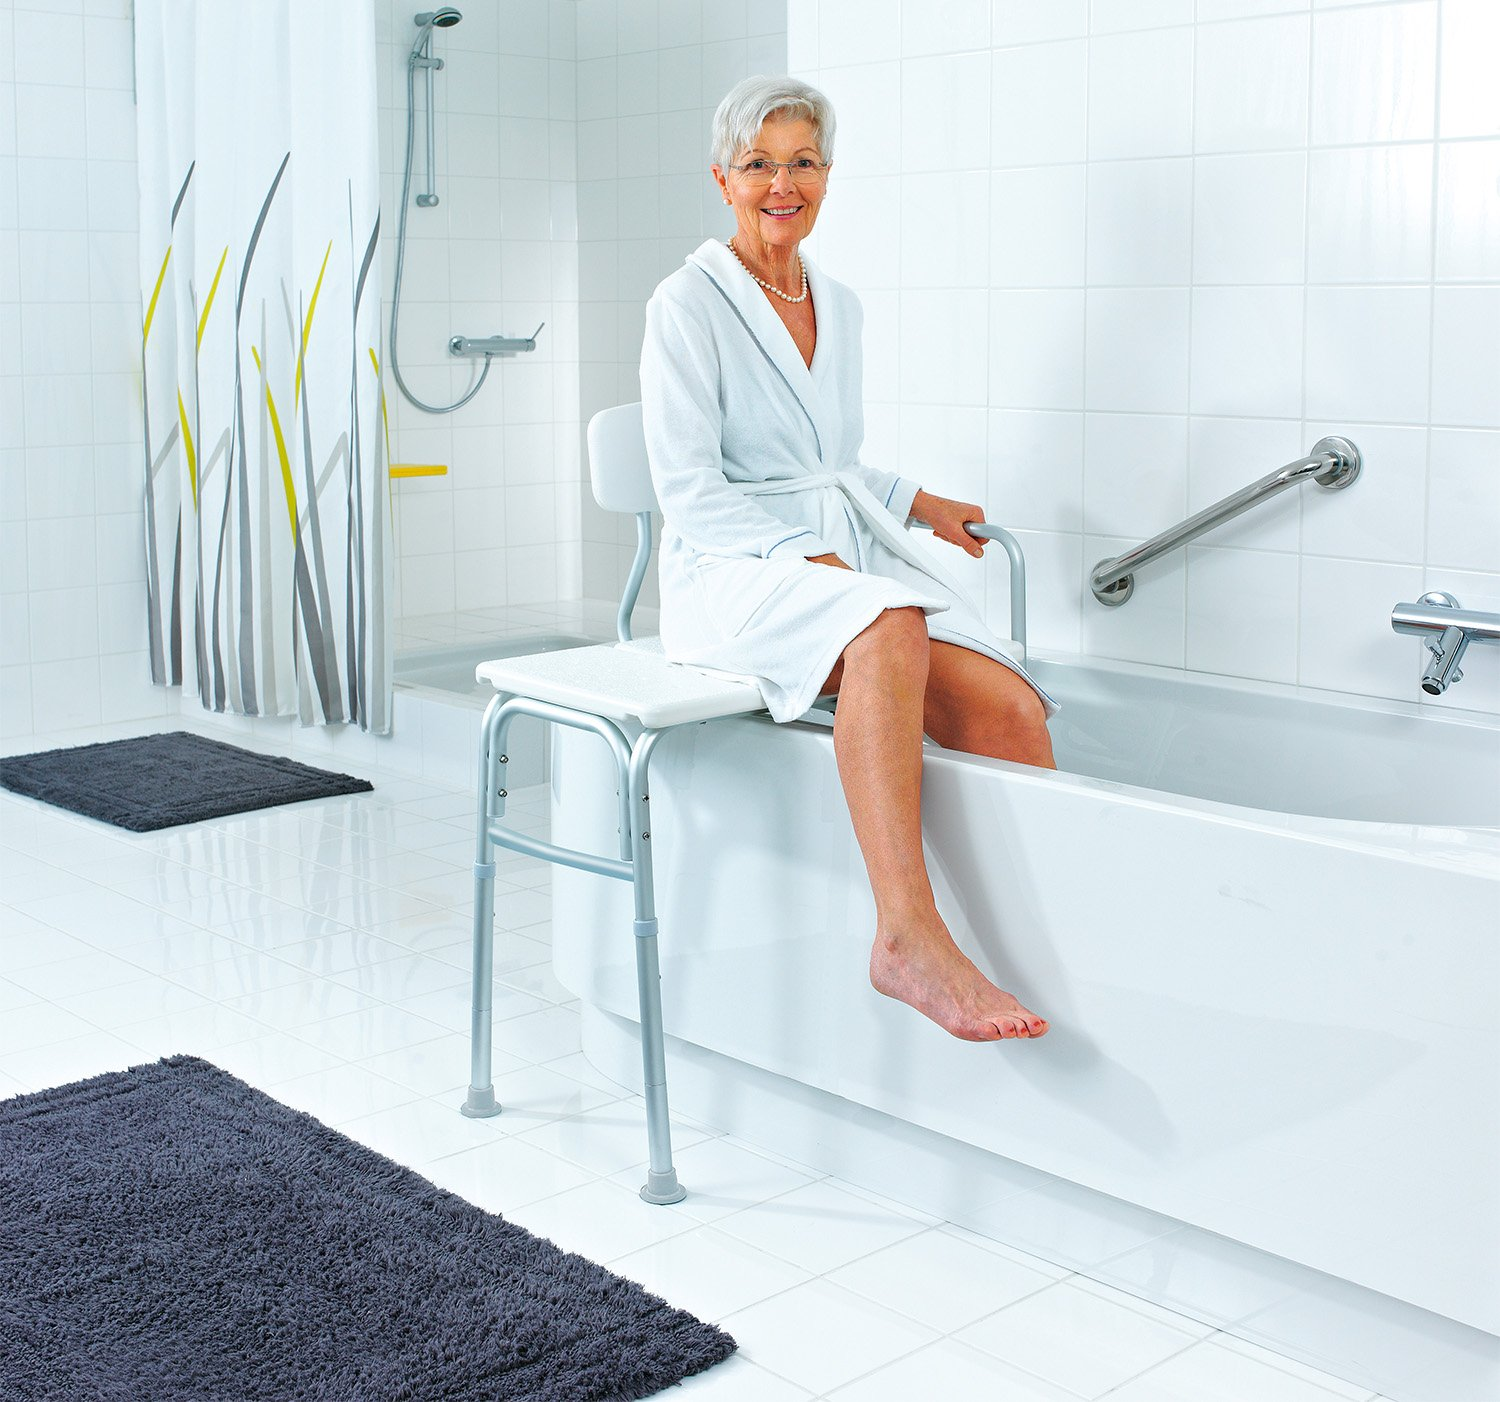 Ridder A0120101 Bathtub Assistance Bench White: Amazon.co.uk ...